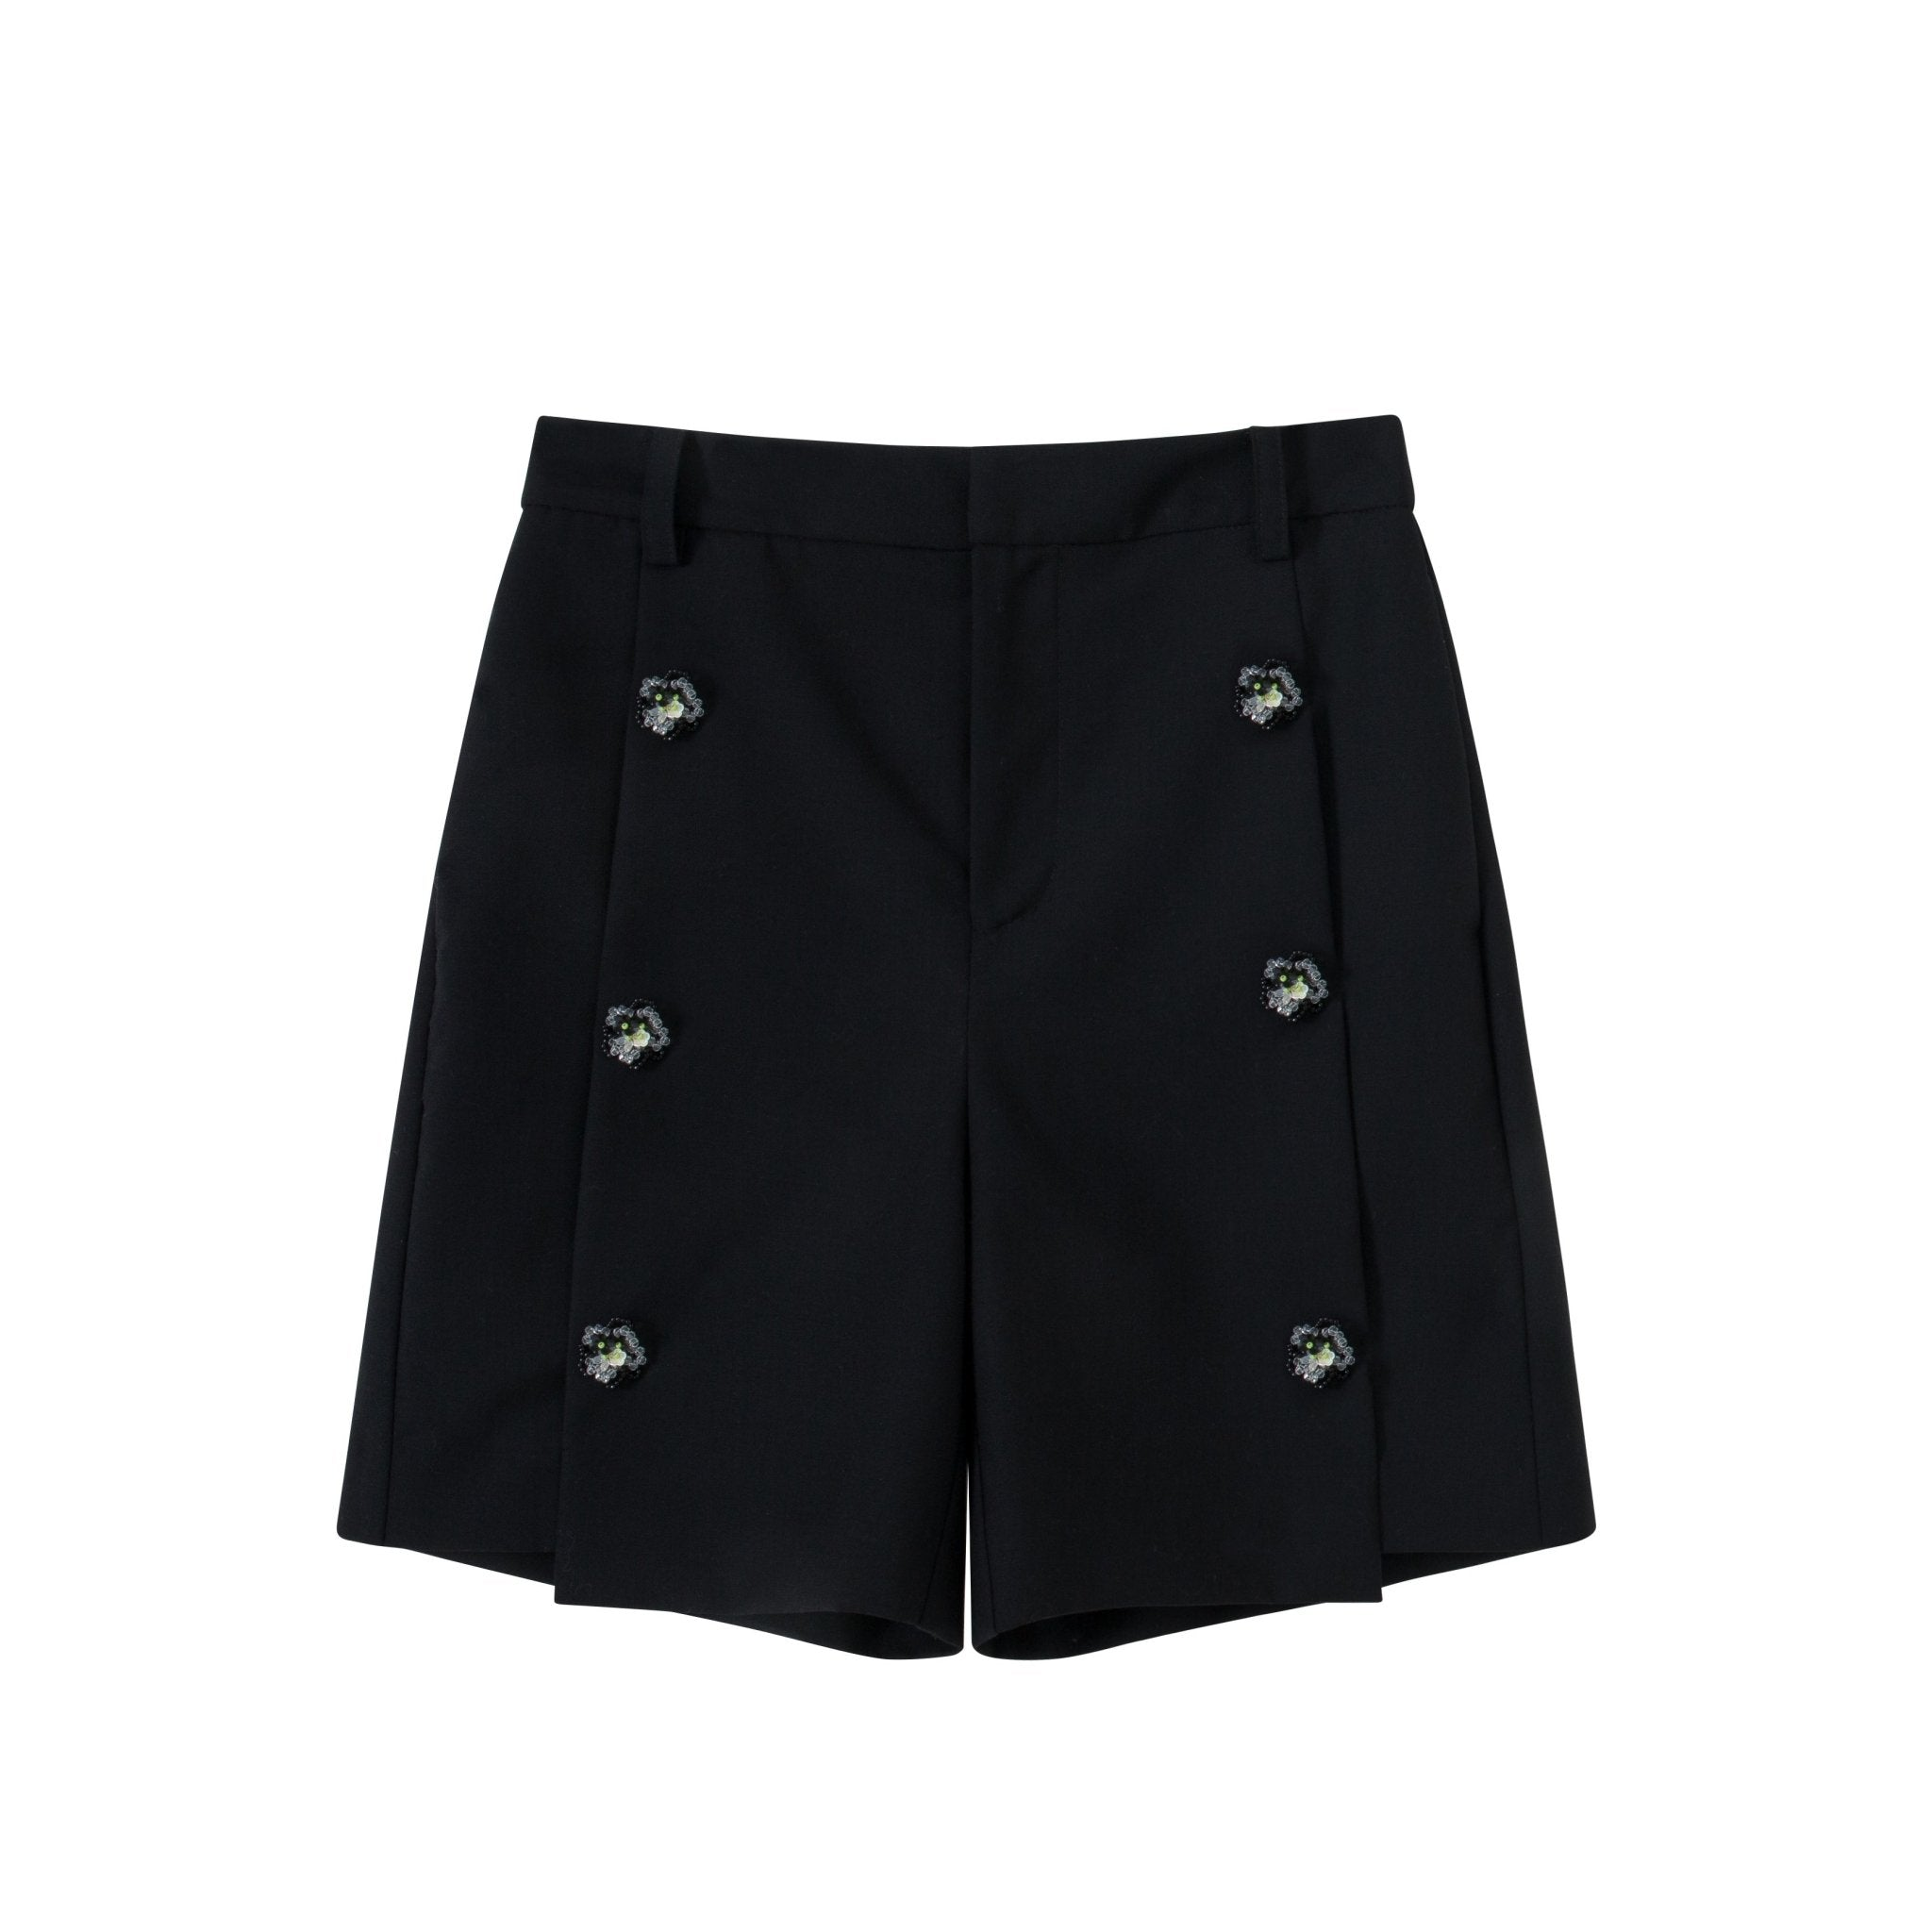 VIAS HERLIAN Black Flower Button Suit Shorts | MADA IN CHINA